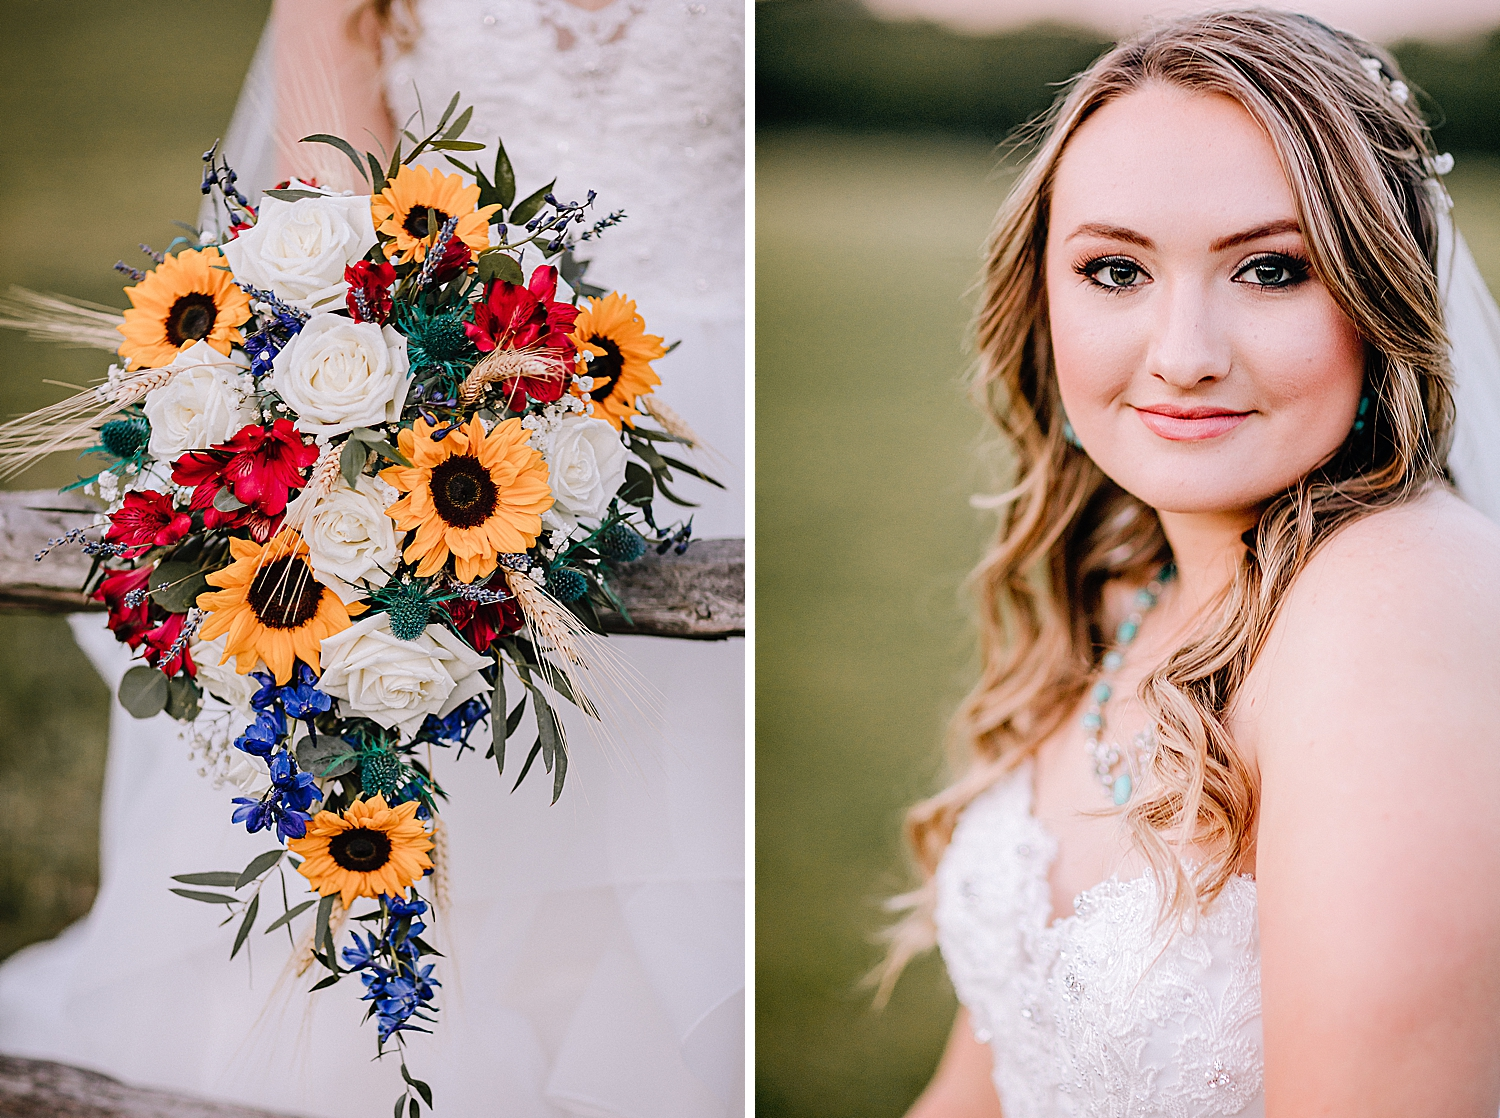 Carly-Barton-Photography-Texas-Bridals-Boerne-Rustic-Wedding-Photos_0012.jpg